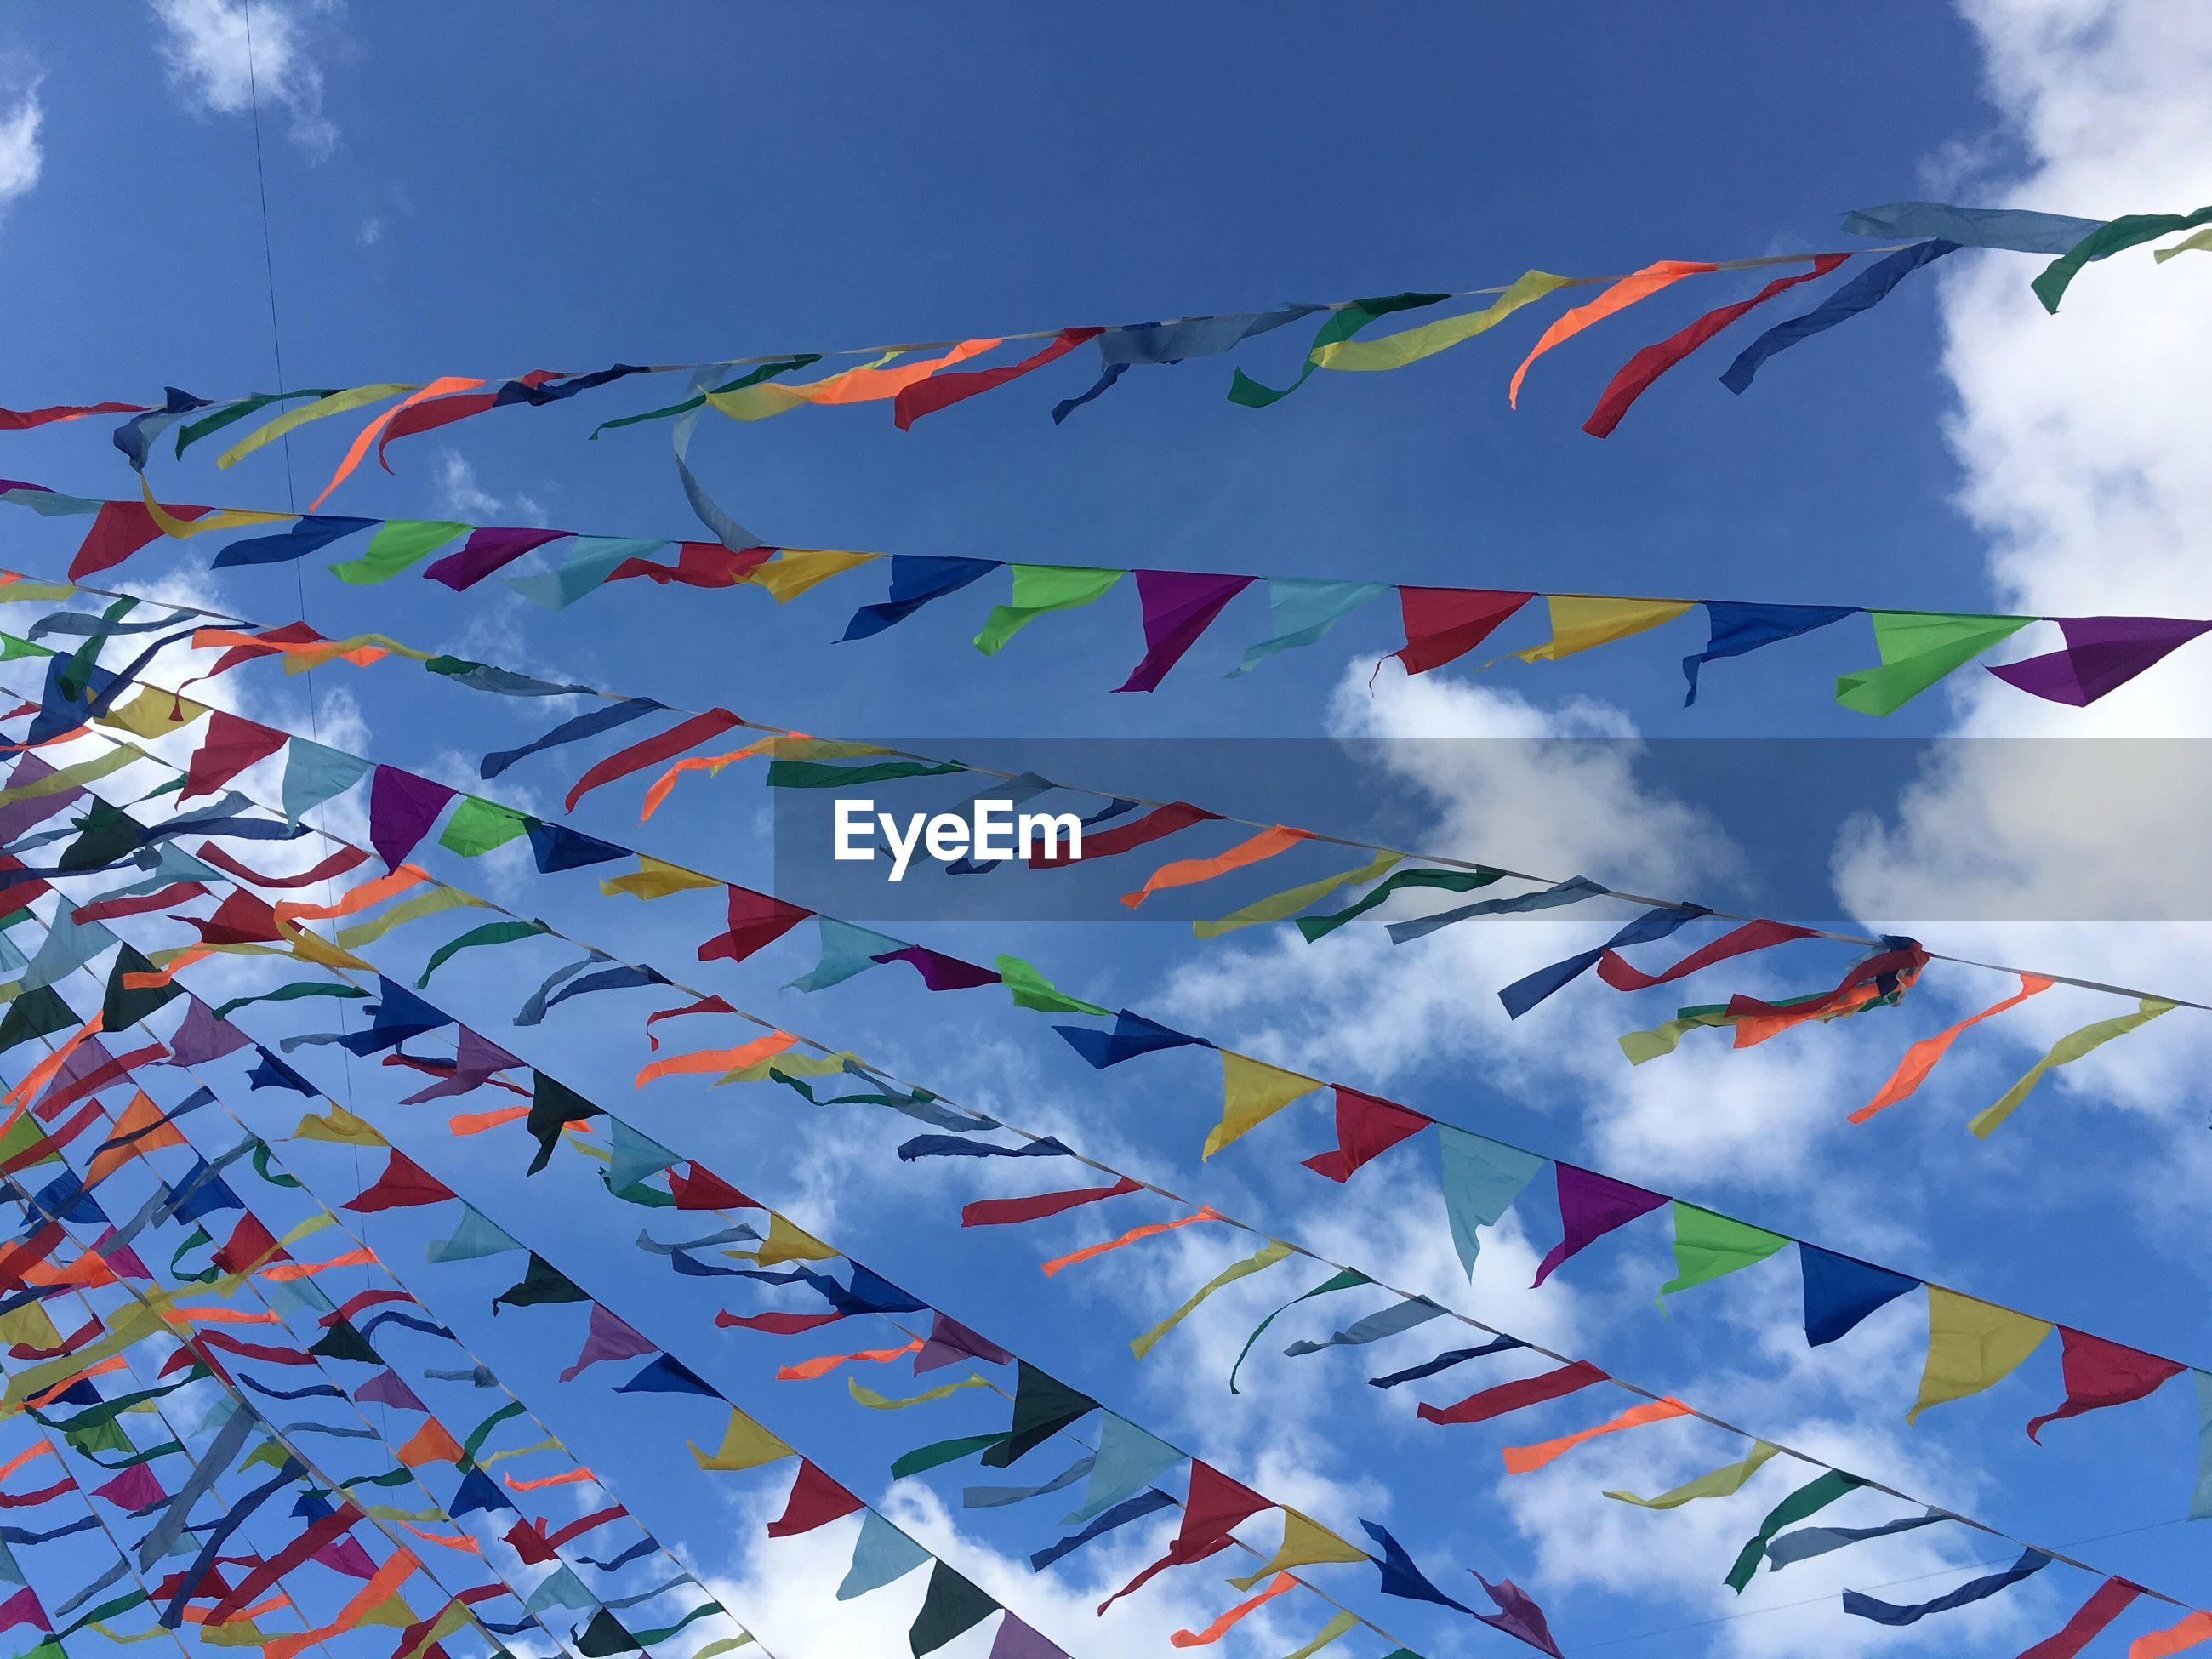 Low angle view of buntings hanging against blue sky